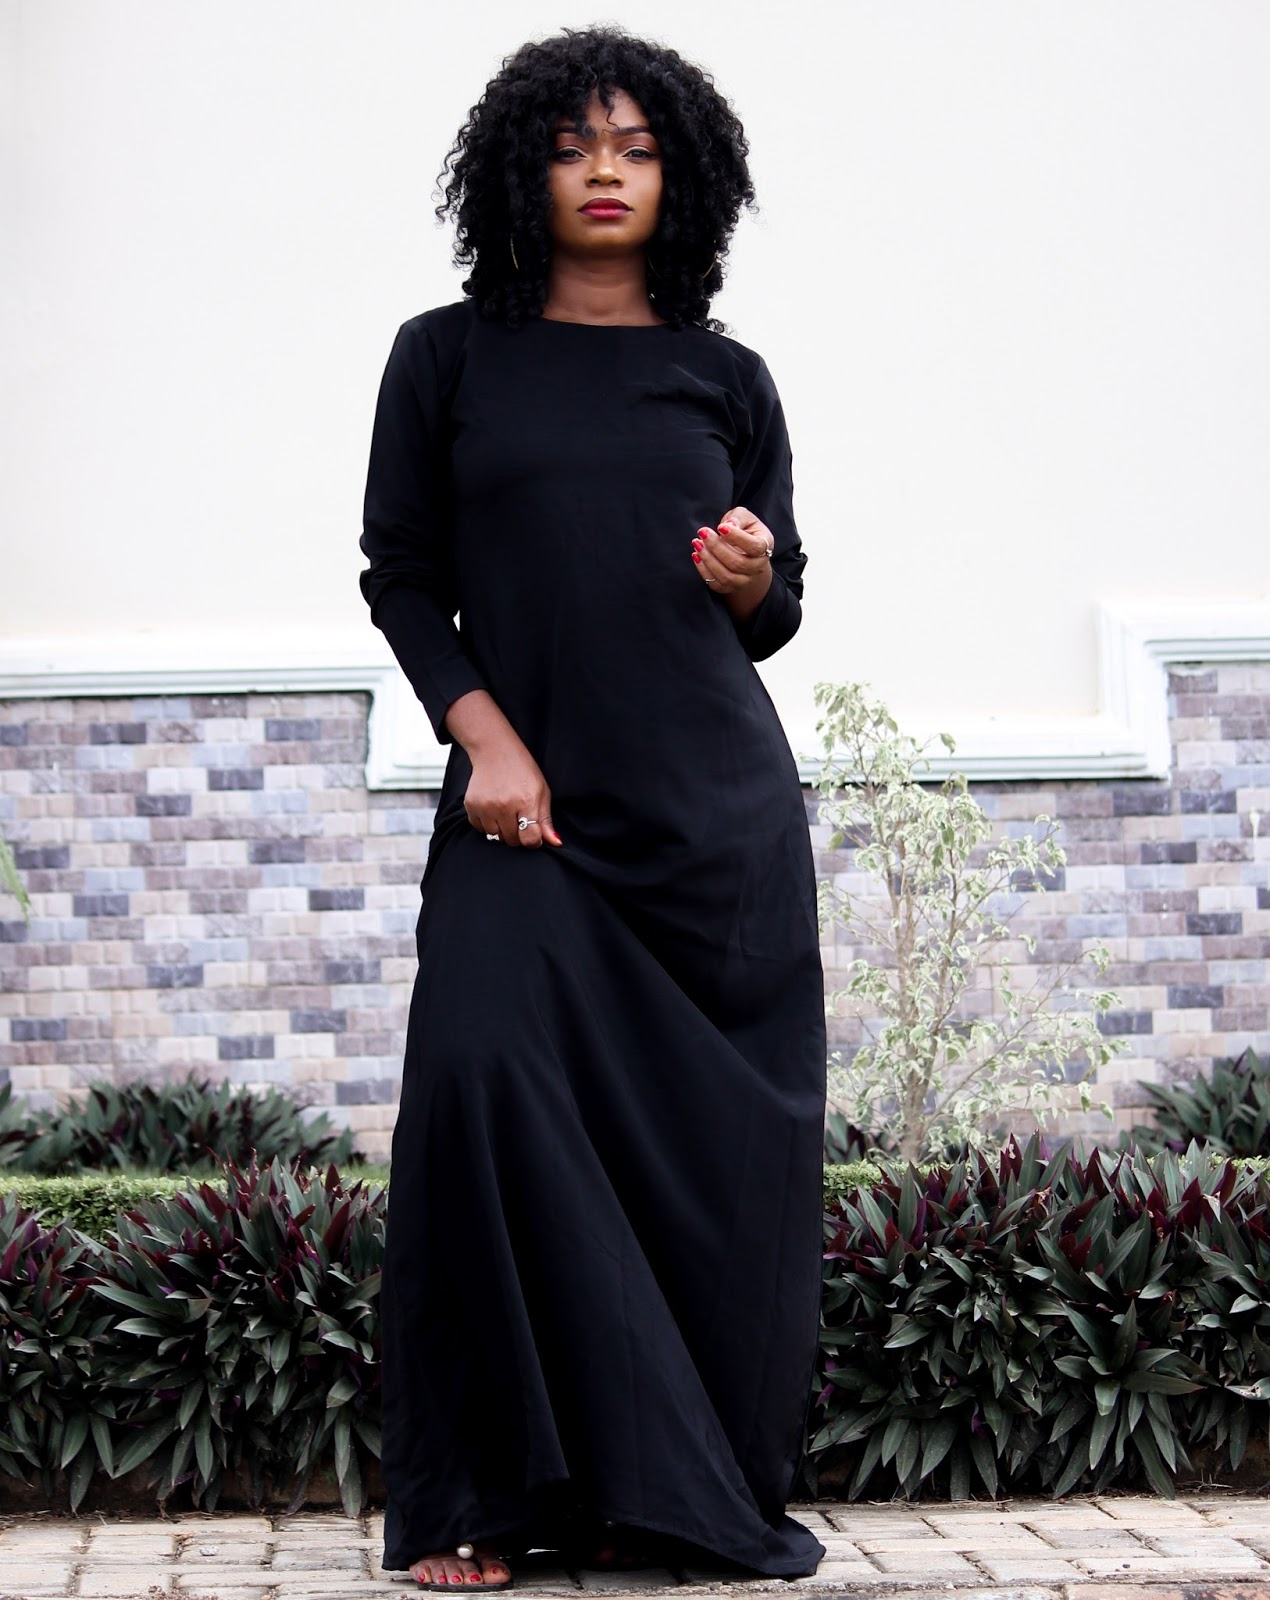 BLACK KAFTAN - Black Kaftan Dress from Porshher